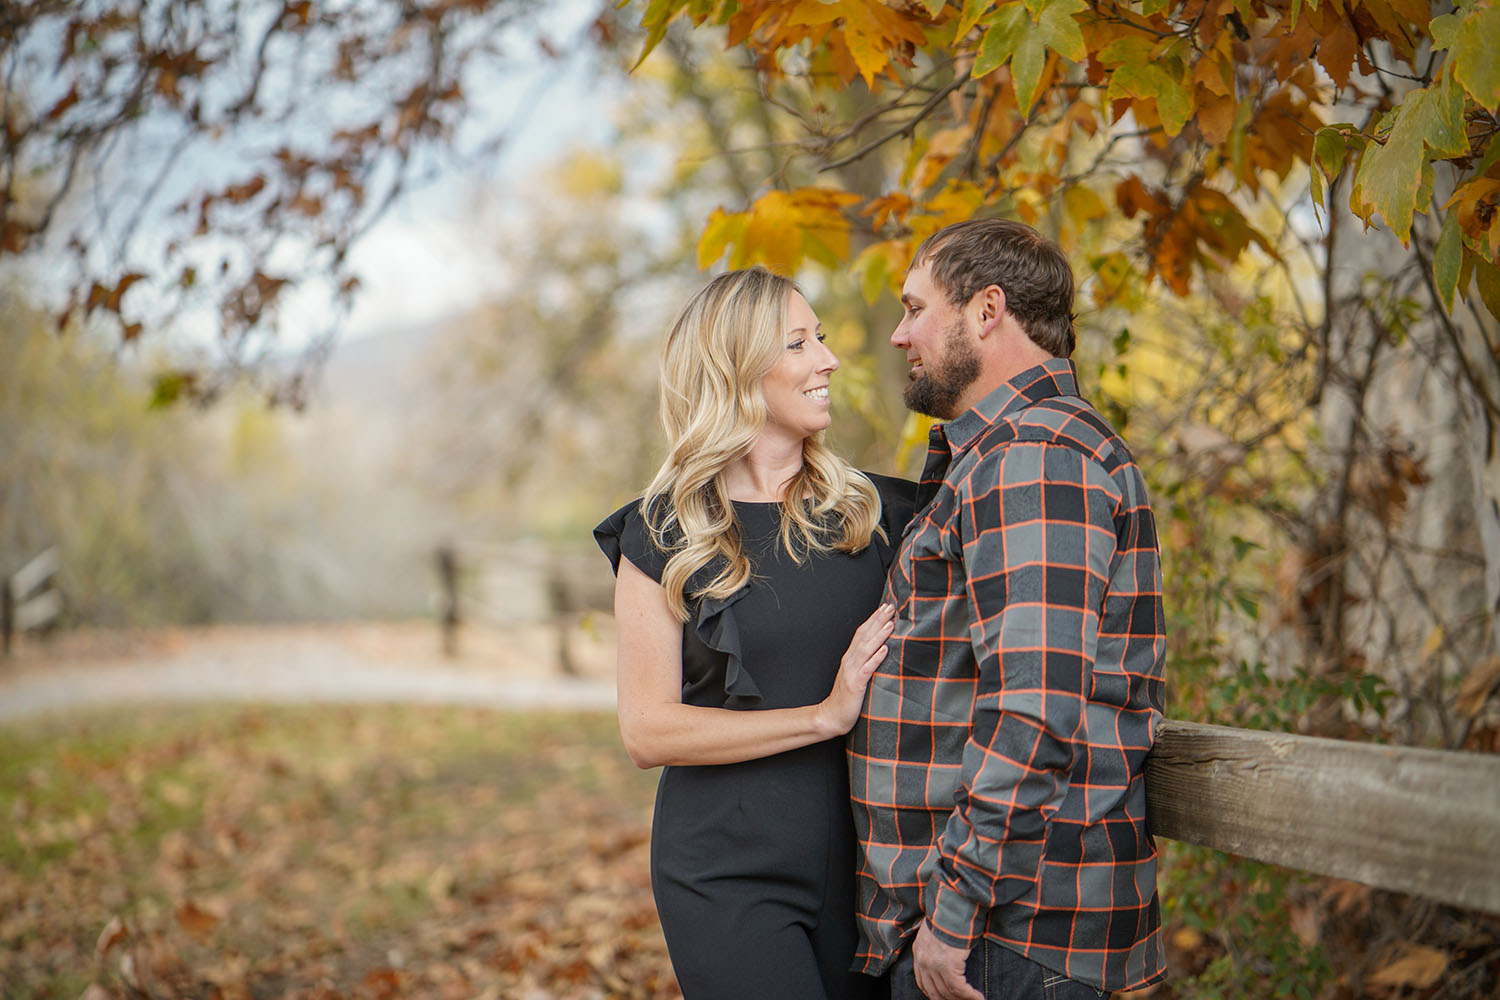 A Bakersfield autumn scene is a great place for some top-notch engagement photography.